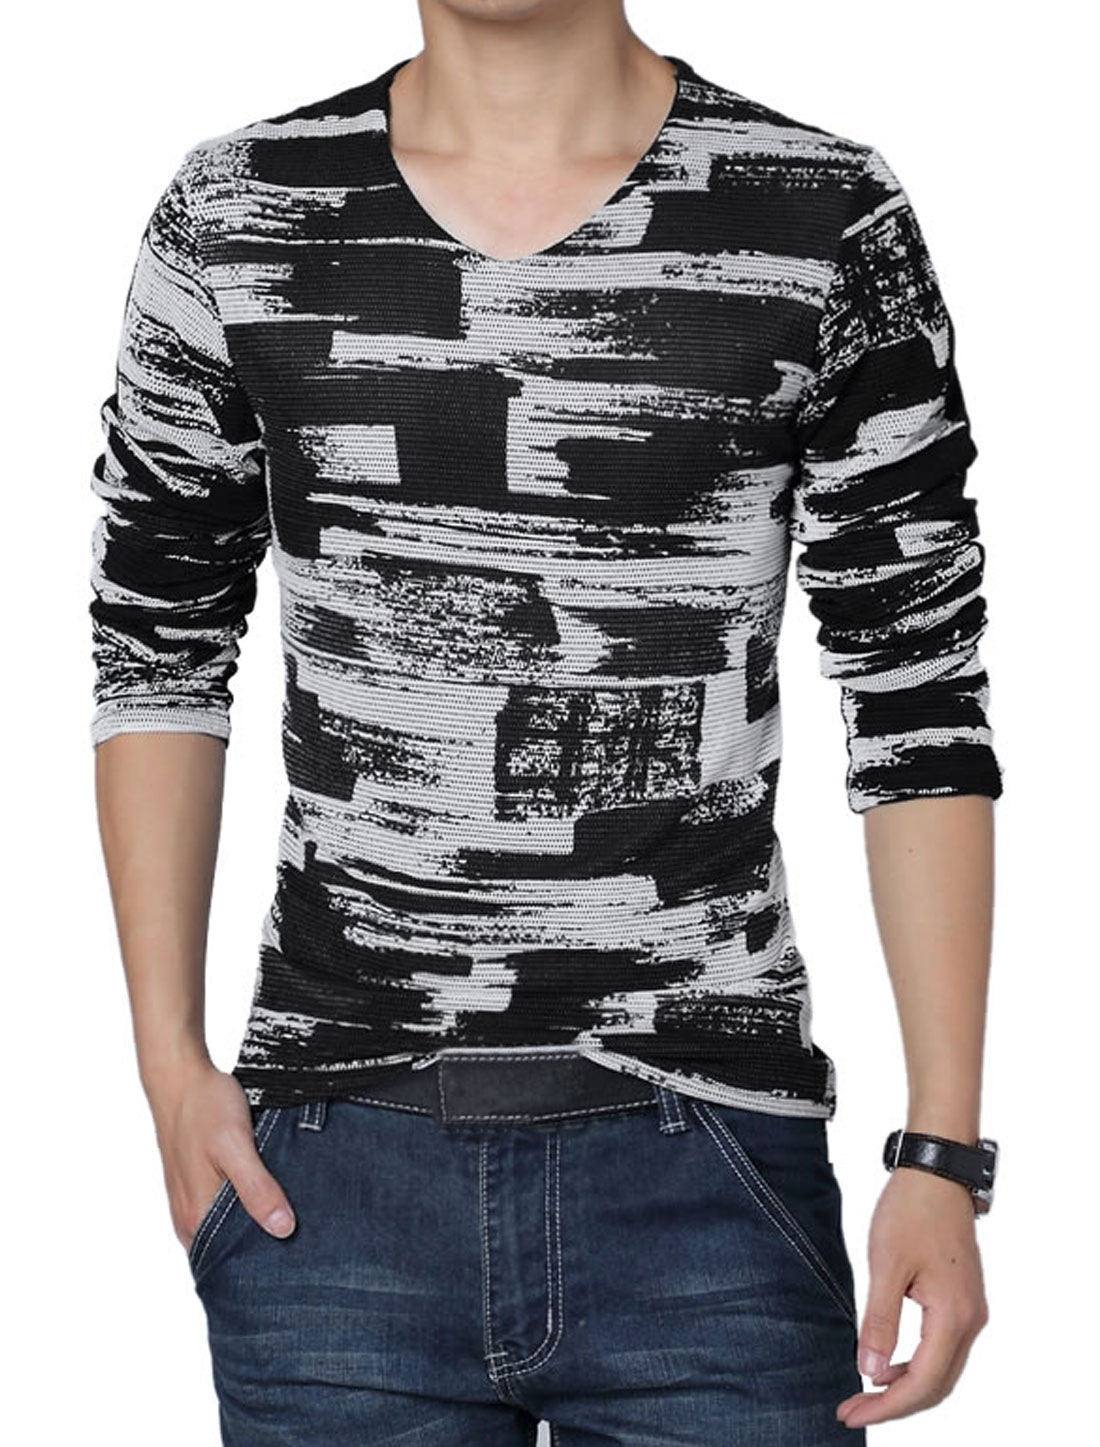 Men V Neck Panel Novelty Prints Stylish T-Shirt White Black L